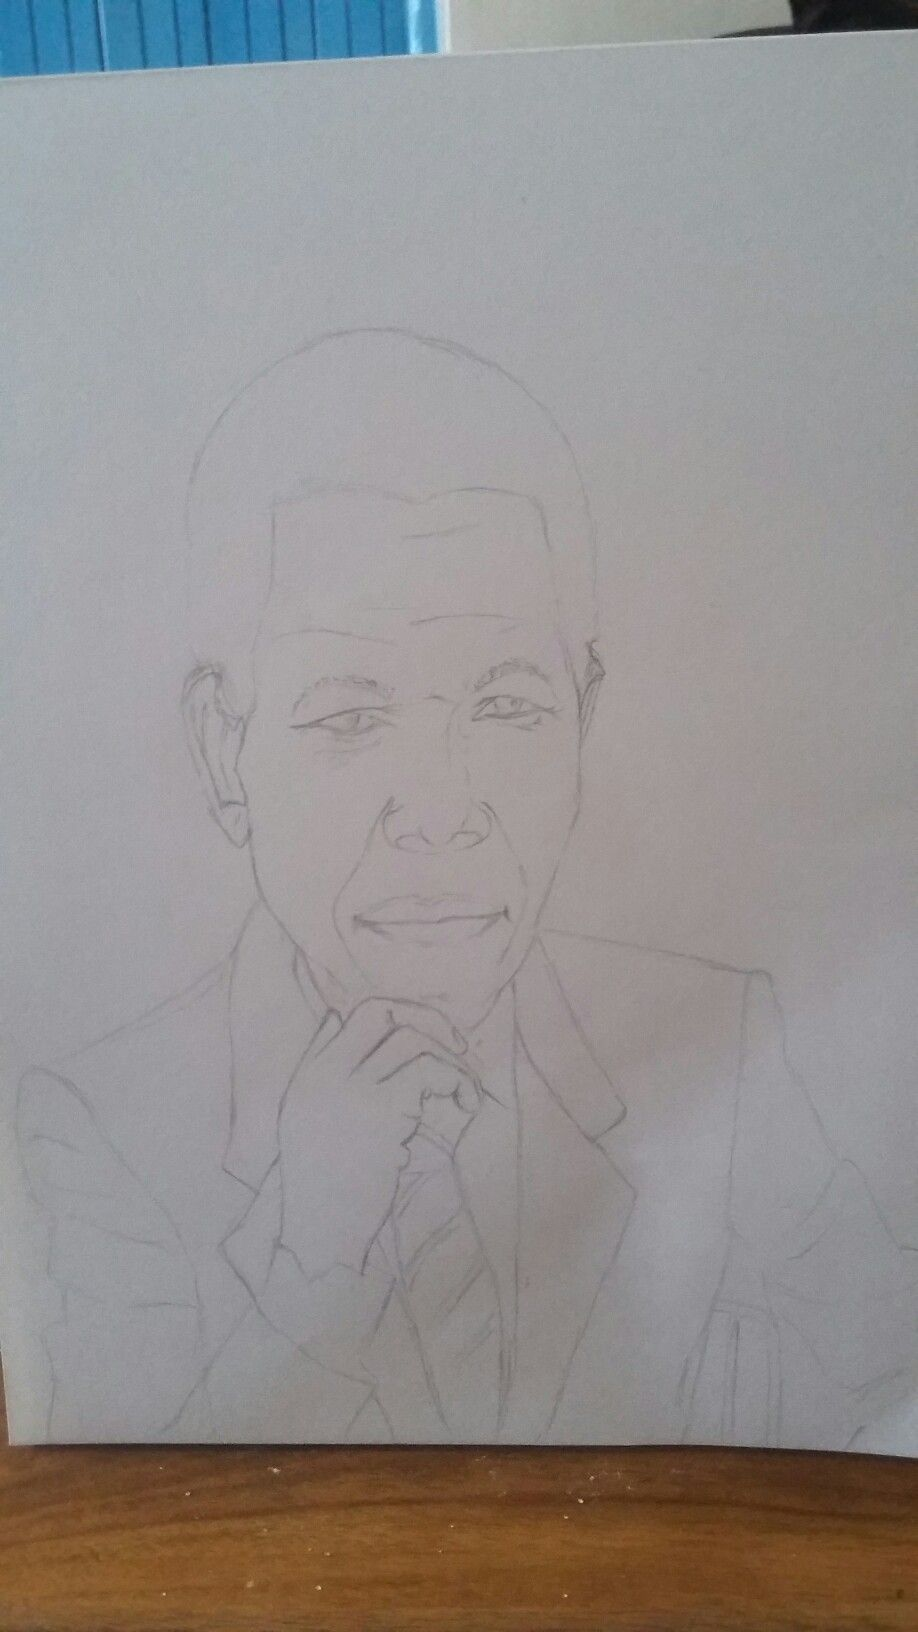 My new pencil sketch in its initial stages